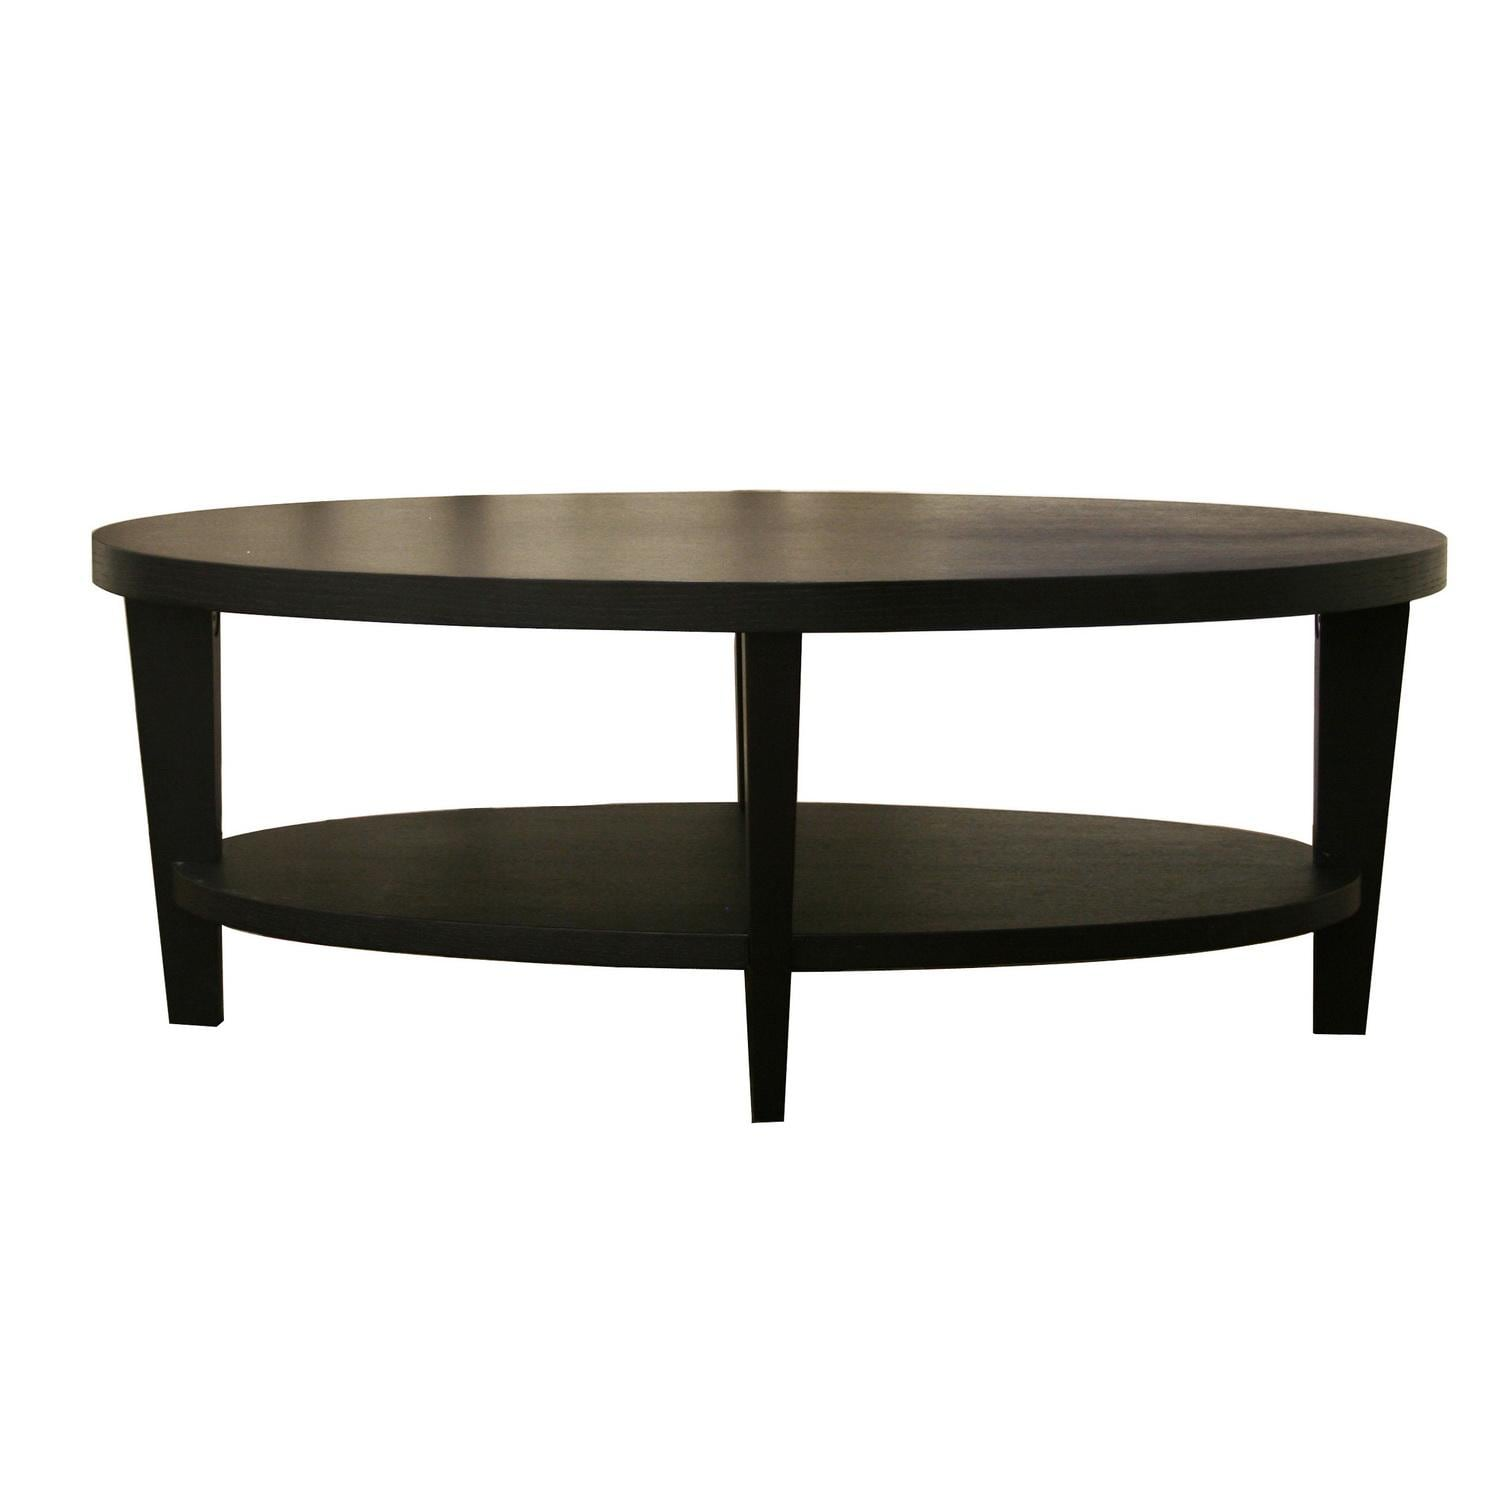 Charleston Modern Oval Black Wood Coffee Table Free Shipping Today 13097325